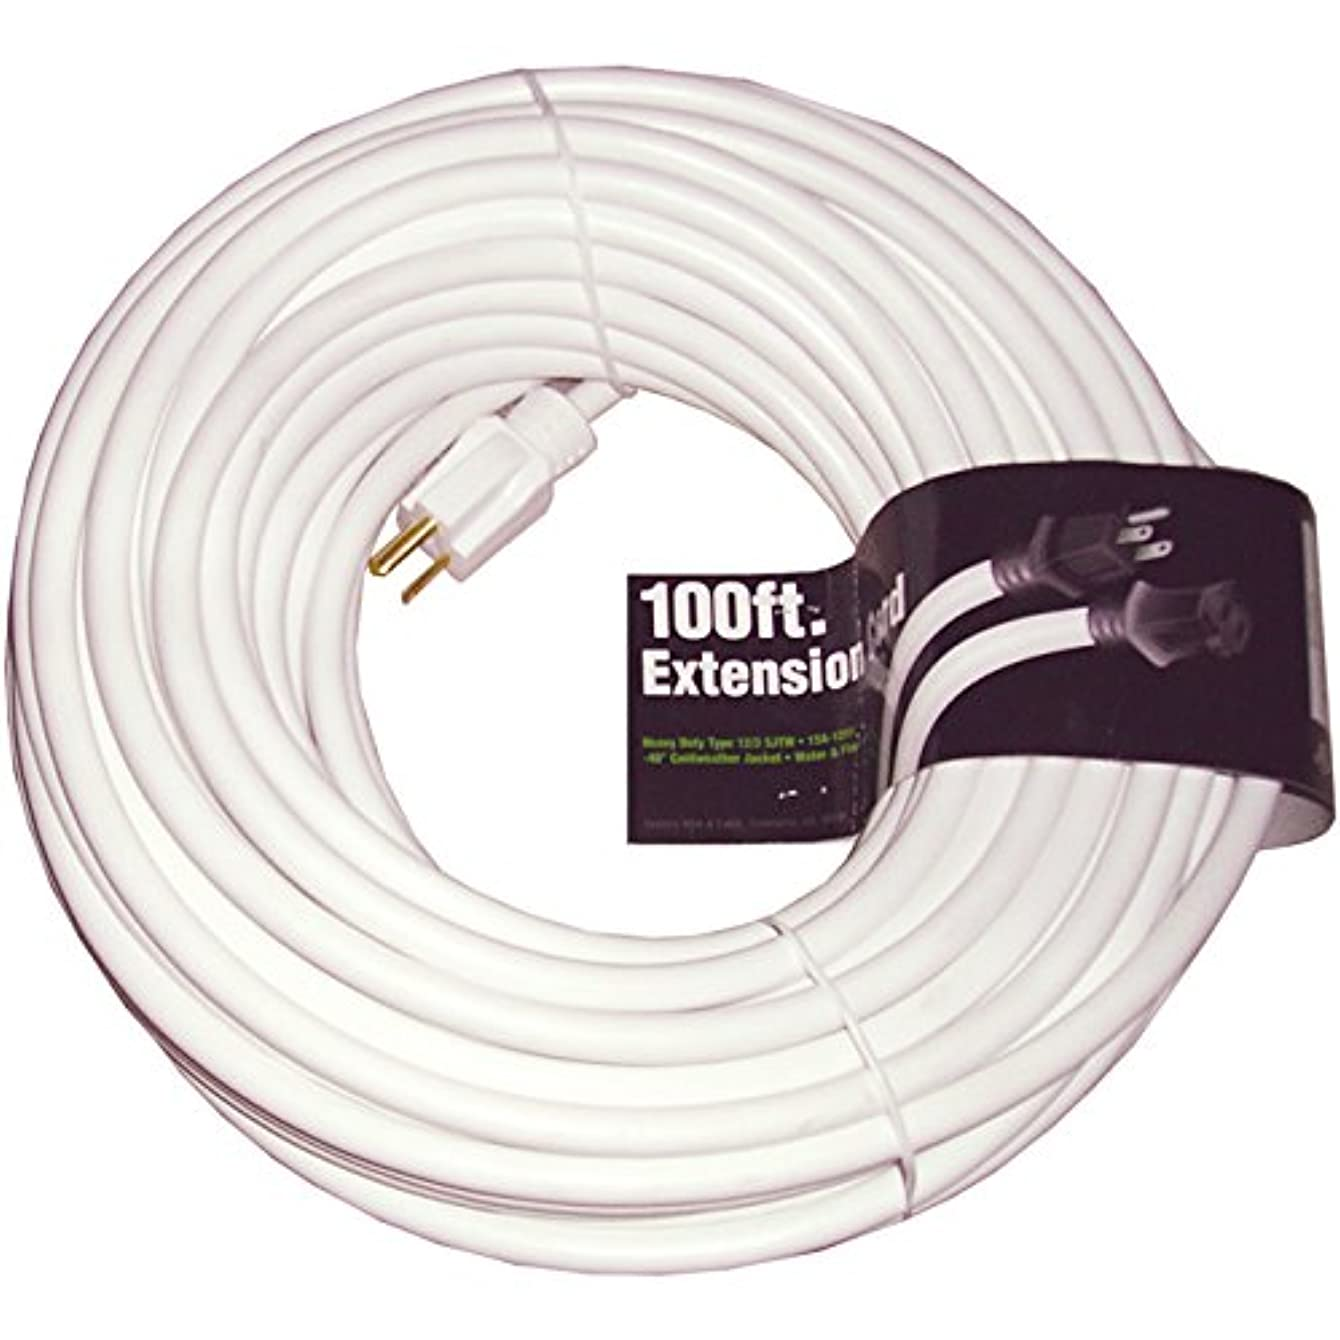 100' White Extension Cord 12/3